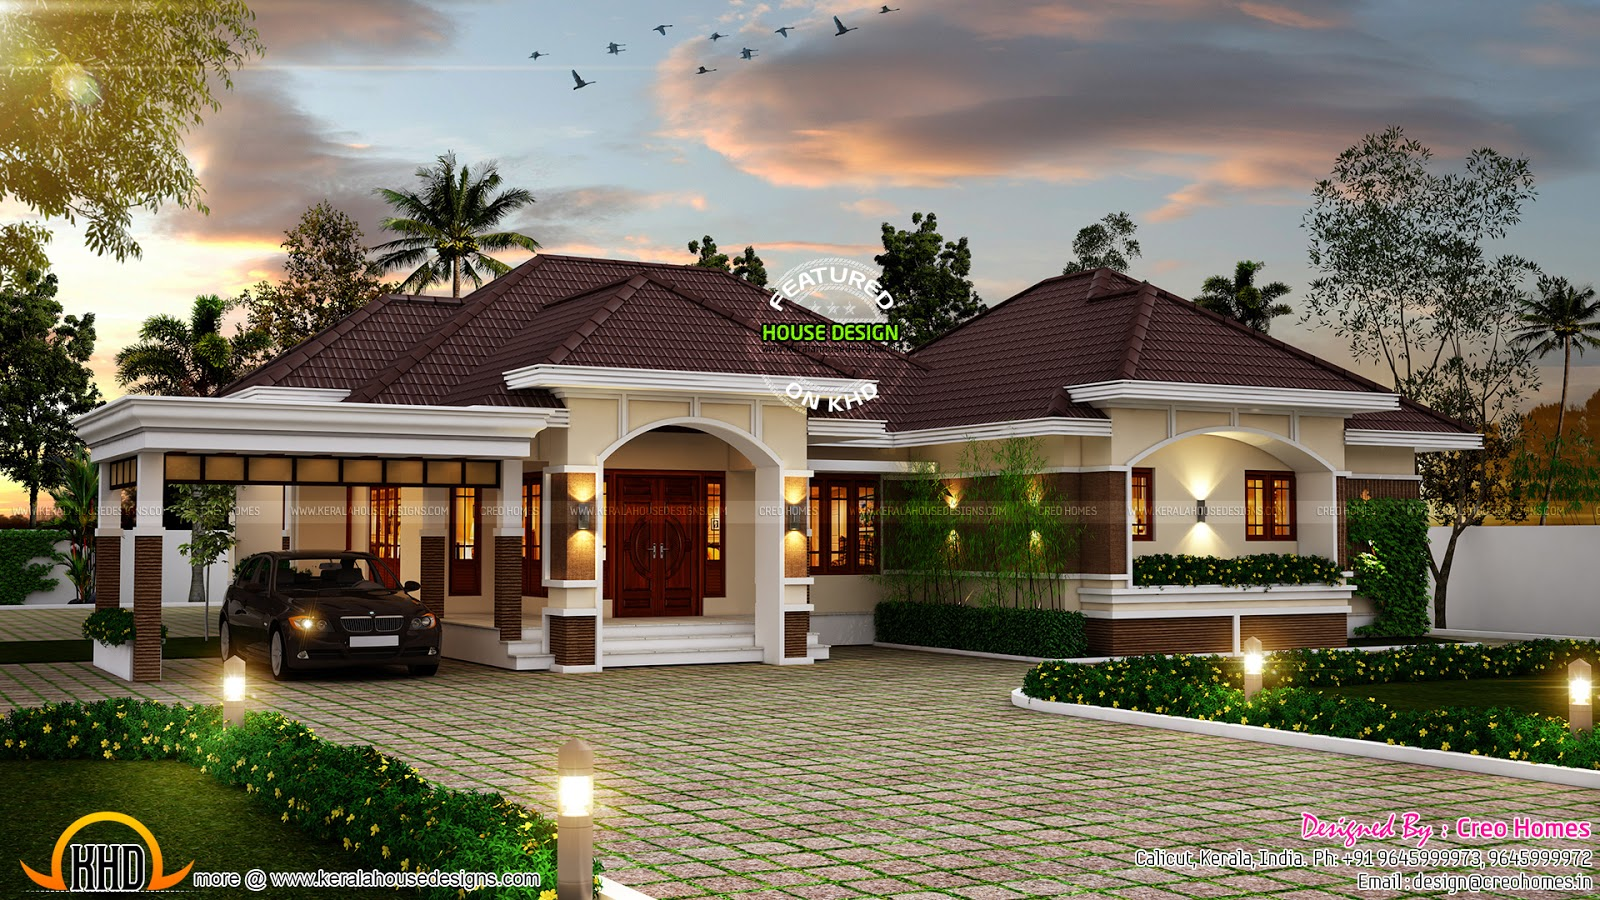 Outstanding bungalow in kerala kerala home design and for Latest house designs in kerala